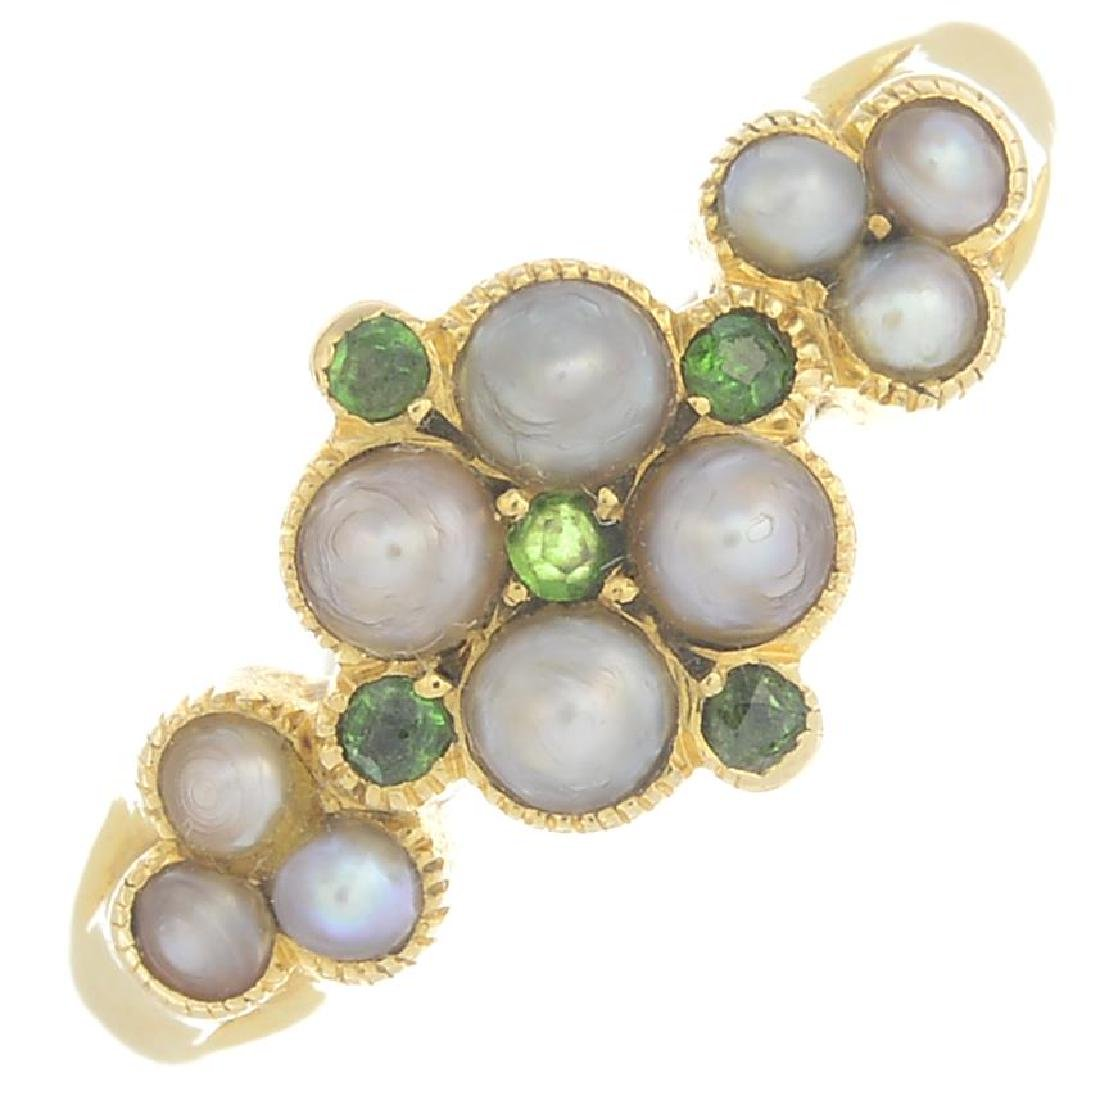 An early 20th century 18ct gold split pearl and